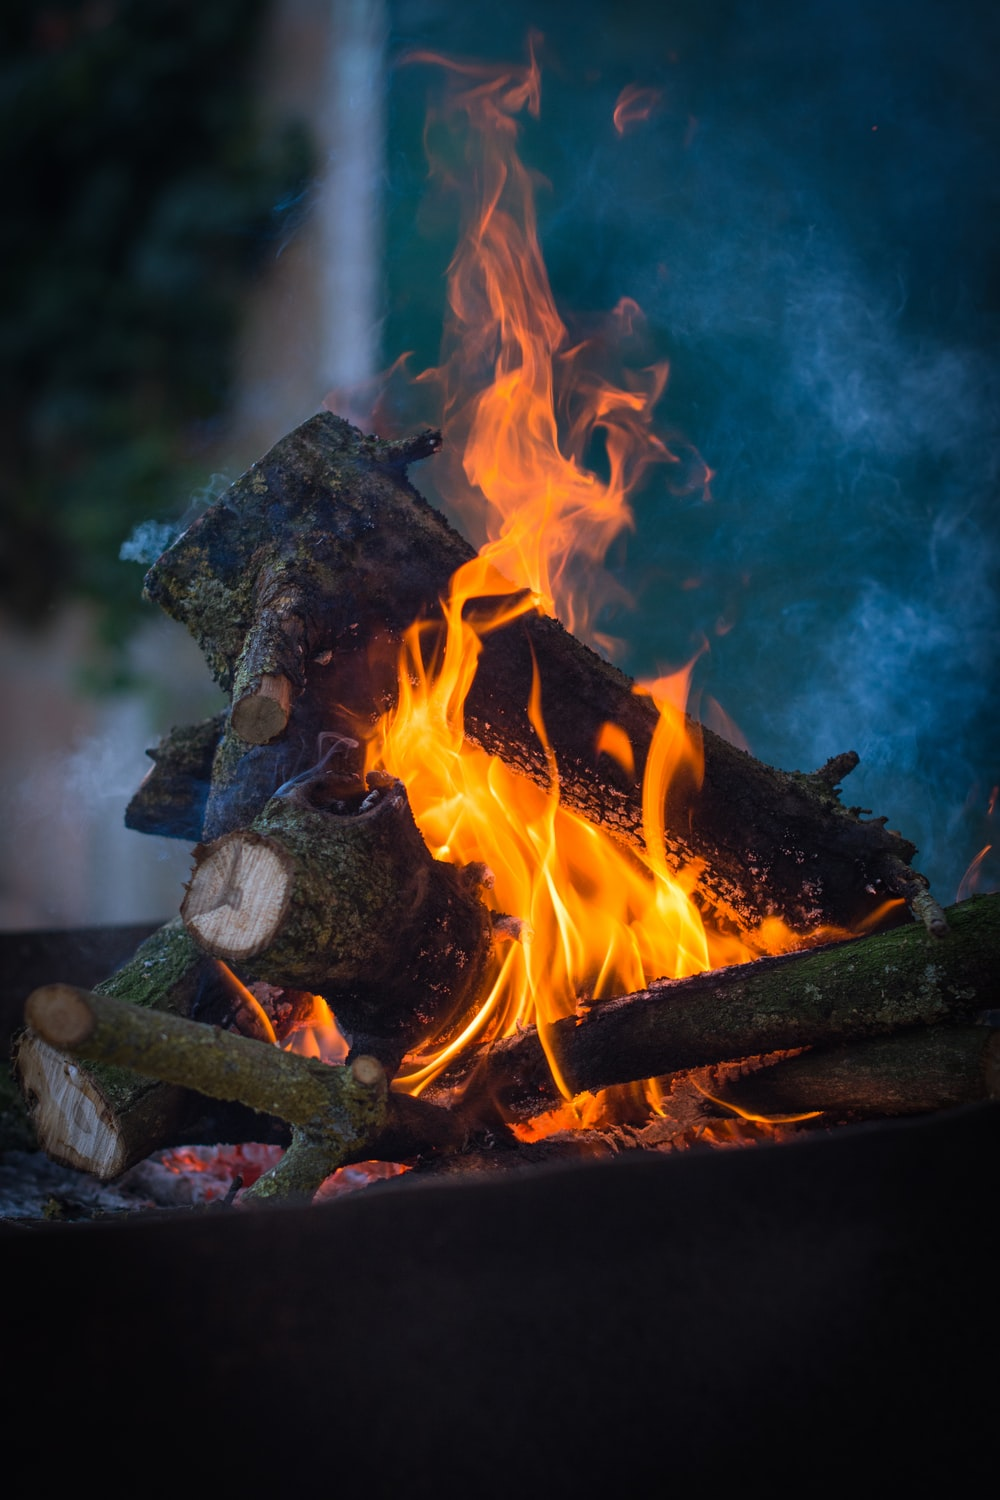 burning wood on fire pit